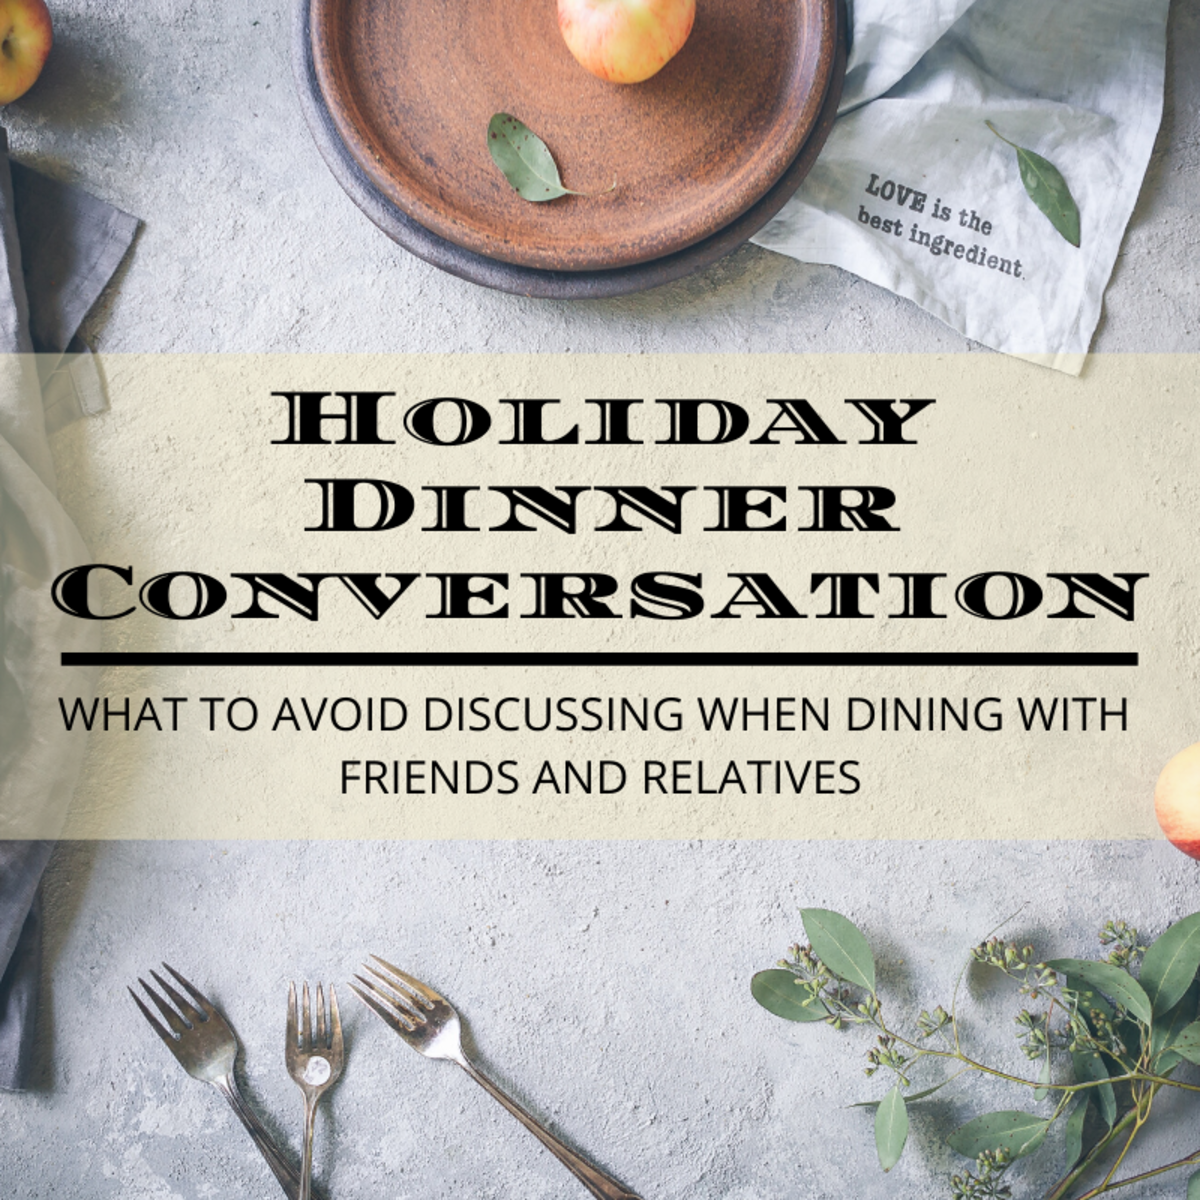 Dinner table conversation with friends and relatives is one of the most rewarding elements of any holiday gathering, but it's important to keep certain guidelines in mind to avoid making other guests feel uncomfortable.